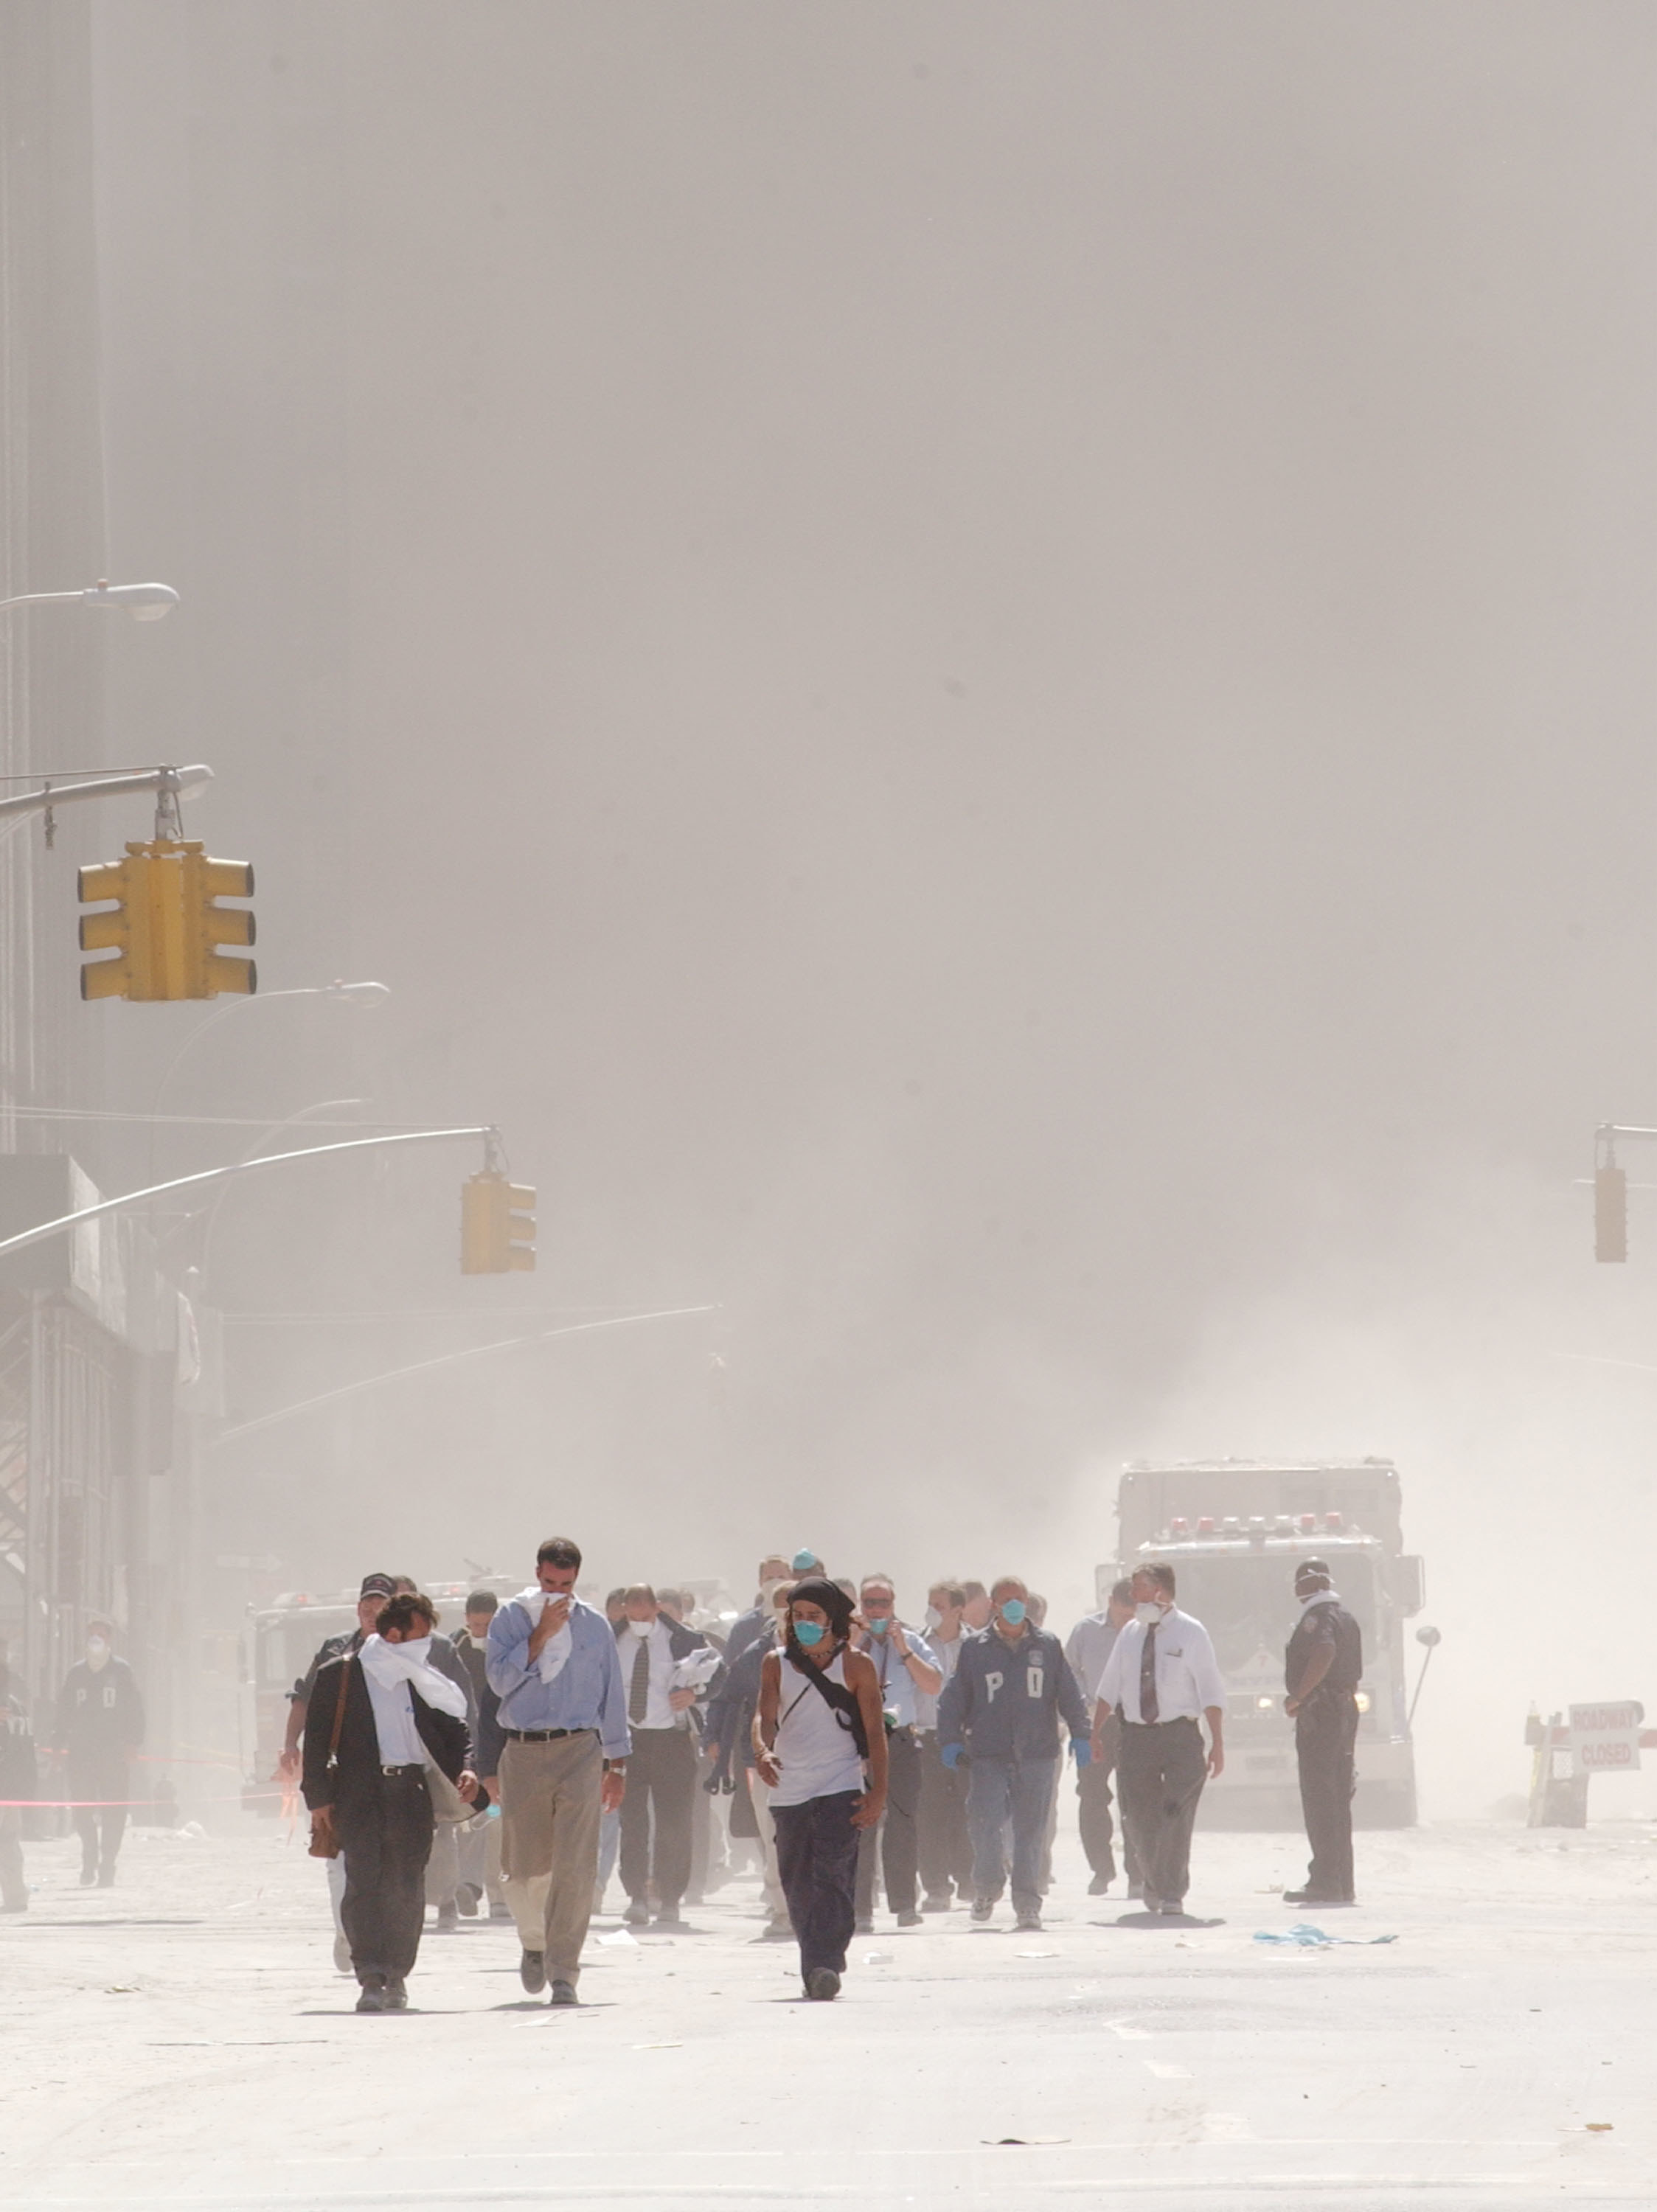 People wearing masks and covering their faces walk through a street that is all white from ash